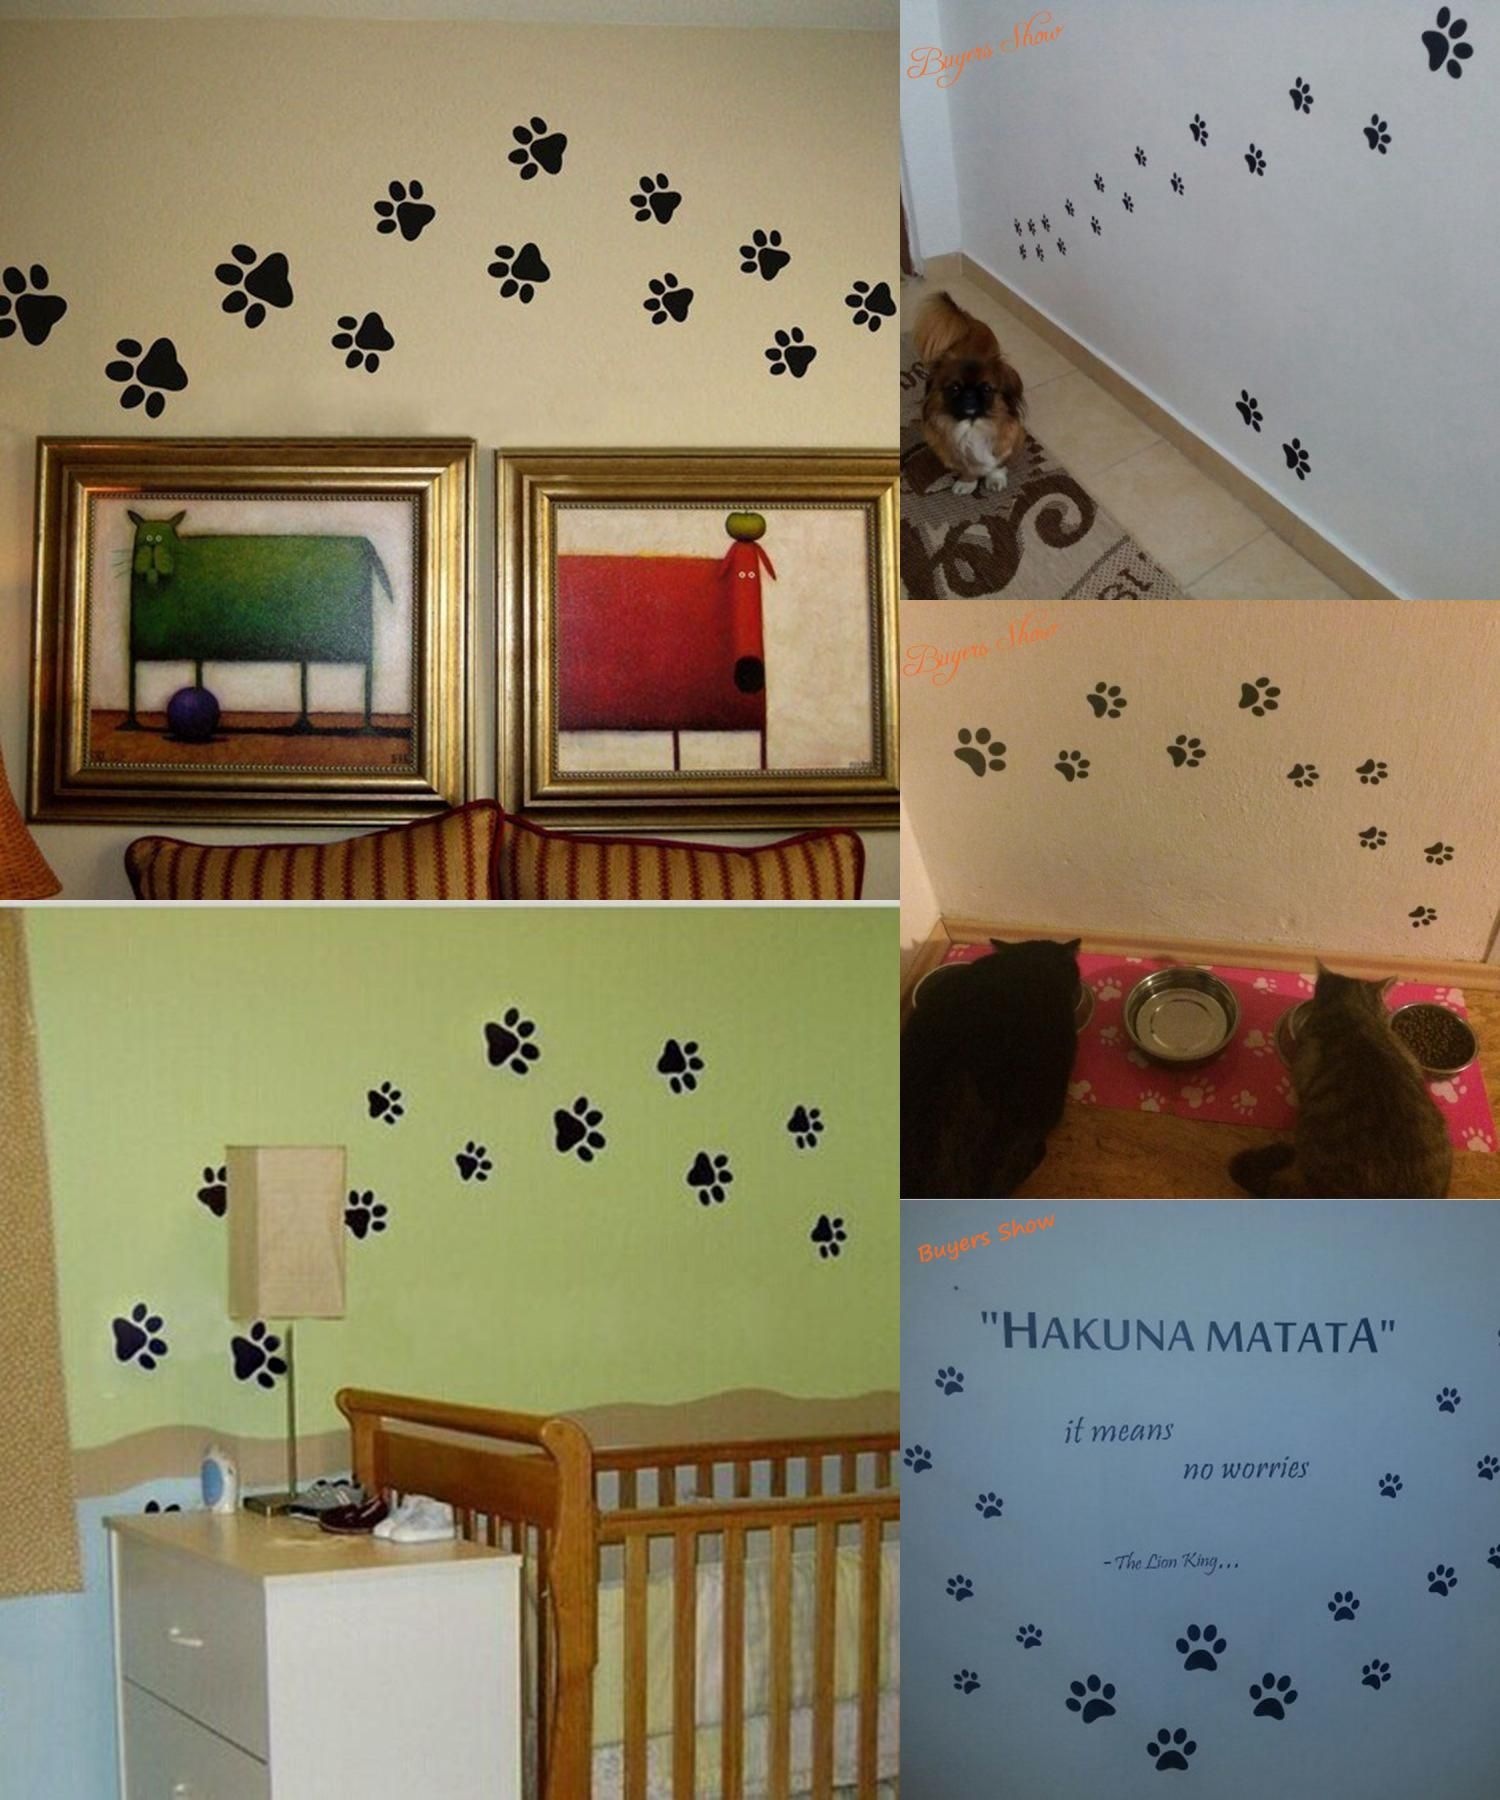 Visit to buy paw print wall stickers 20 walking paw prints wall decal home art decor dog cat food dish room house bowl sticker p2052 advertisement